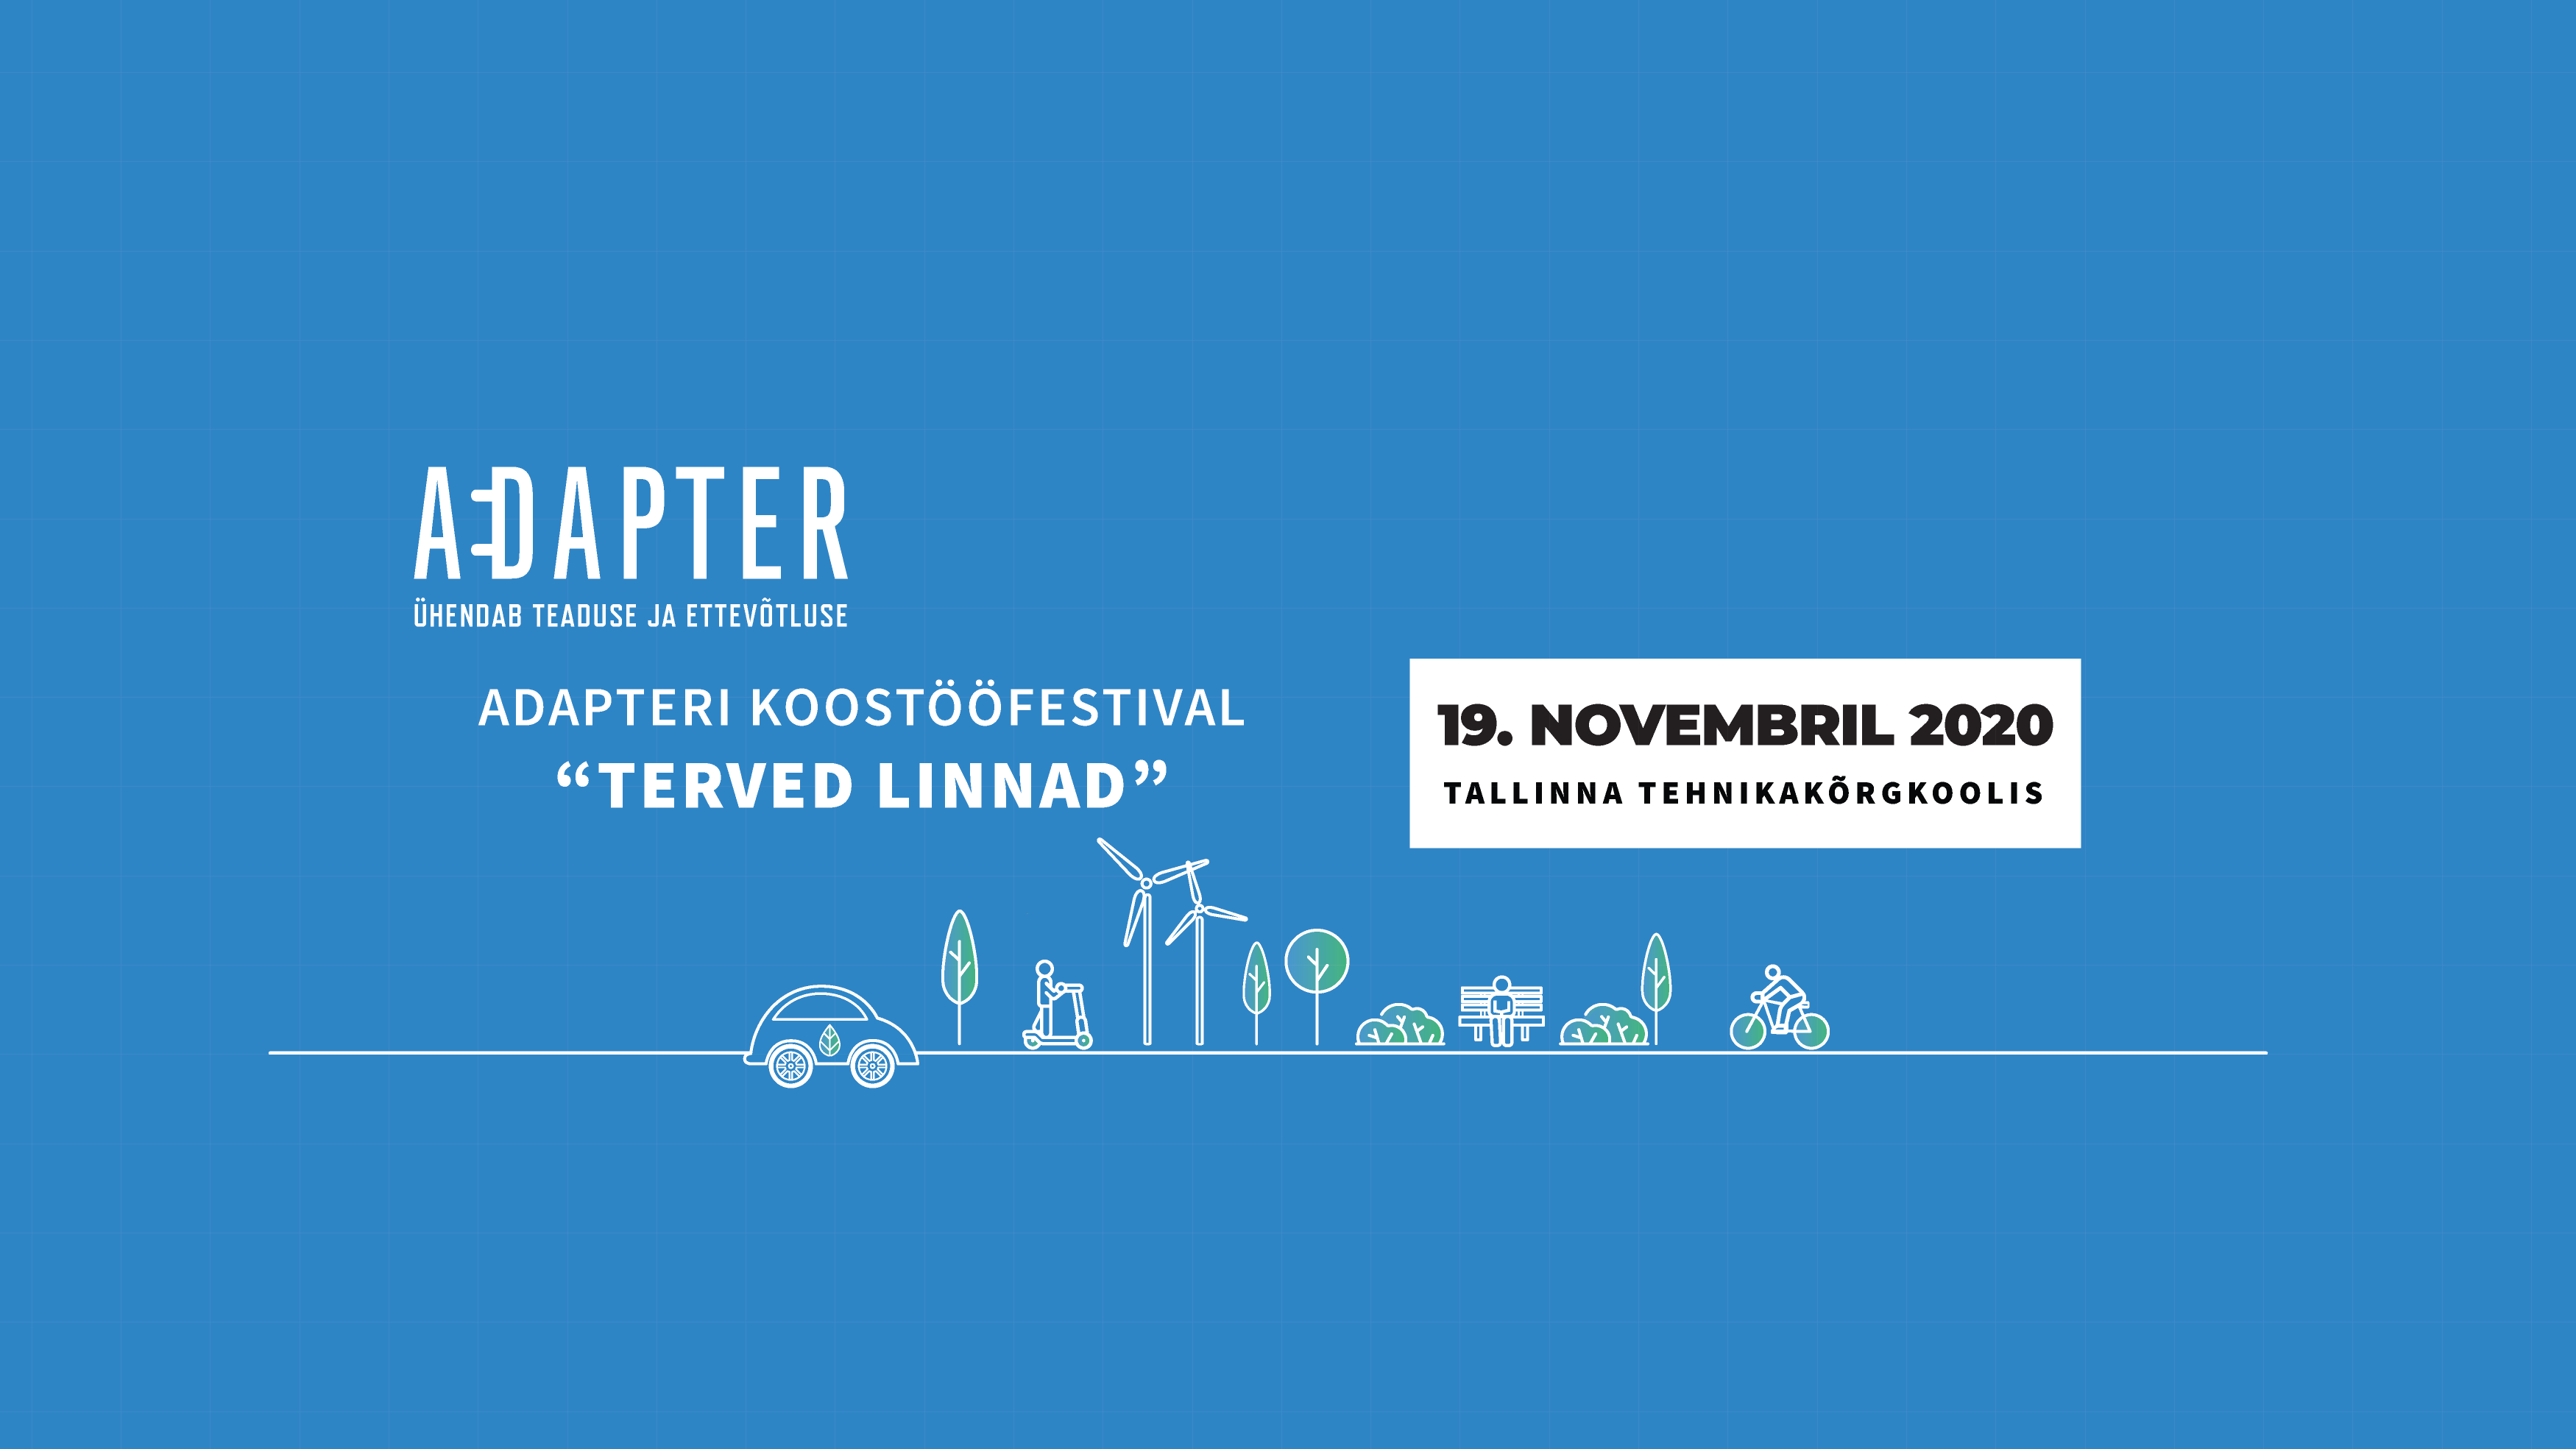 Cooperation festival Whole cities on November 19